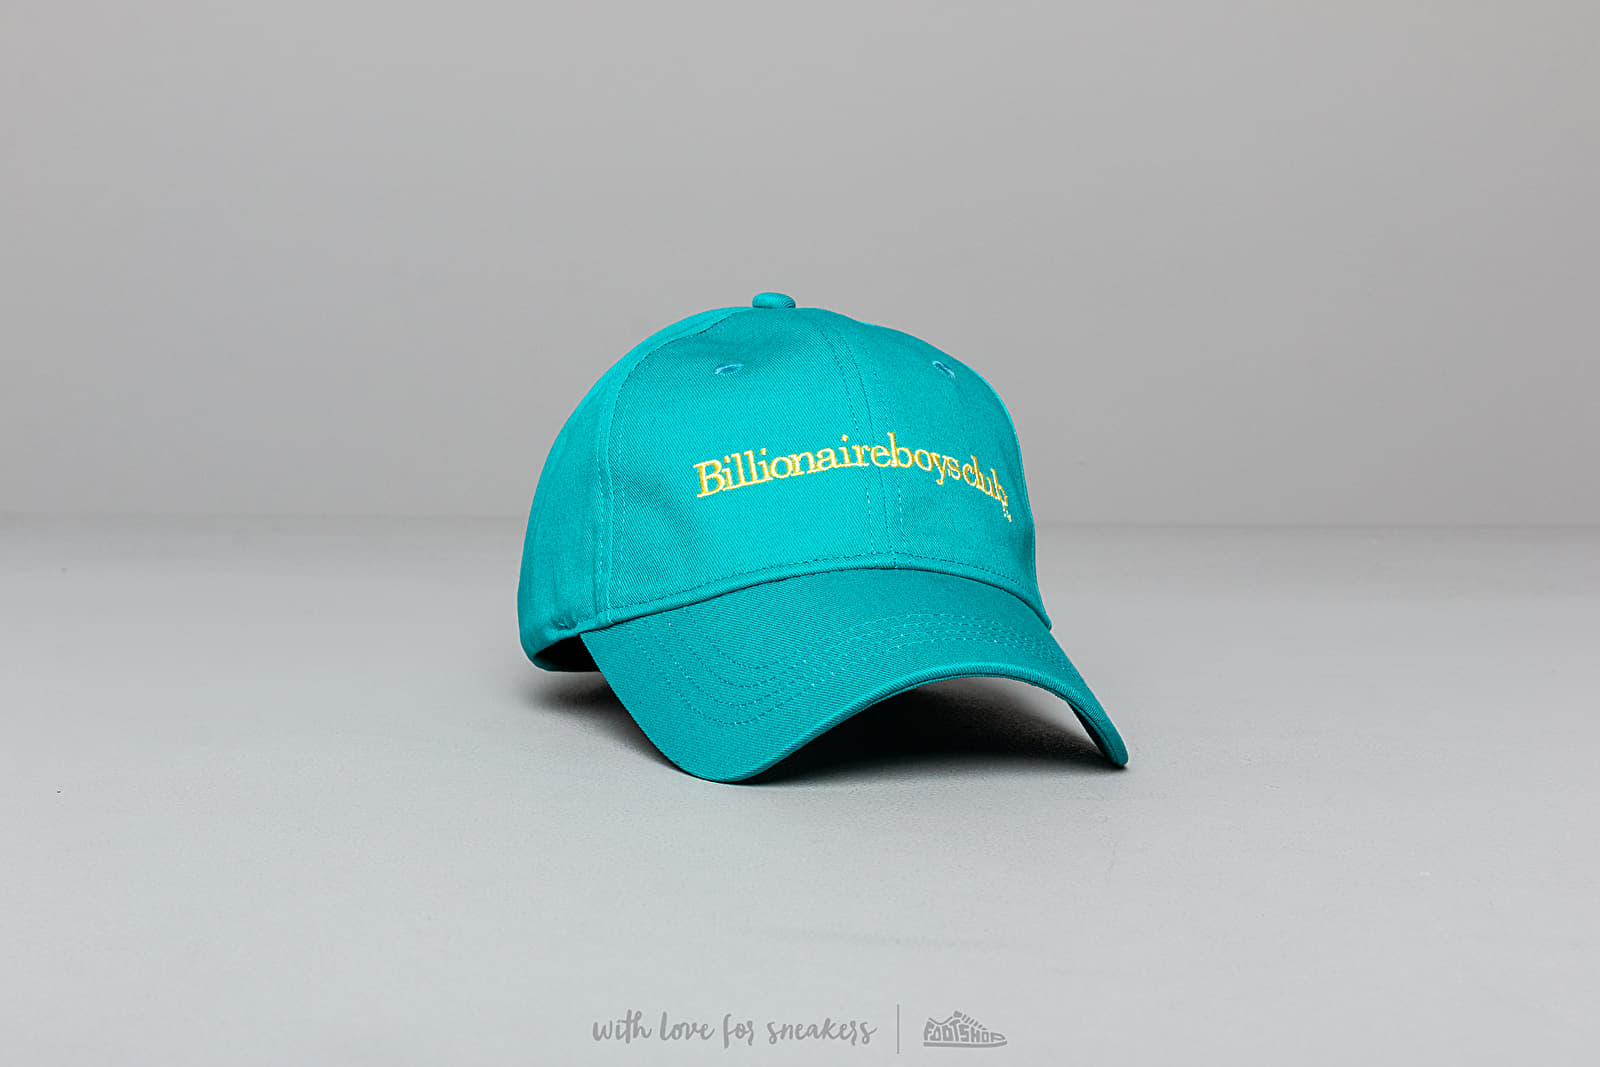 Billionaire Boys Club Embroidered Curved Visor Cap